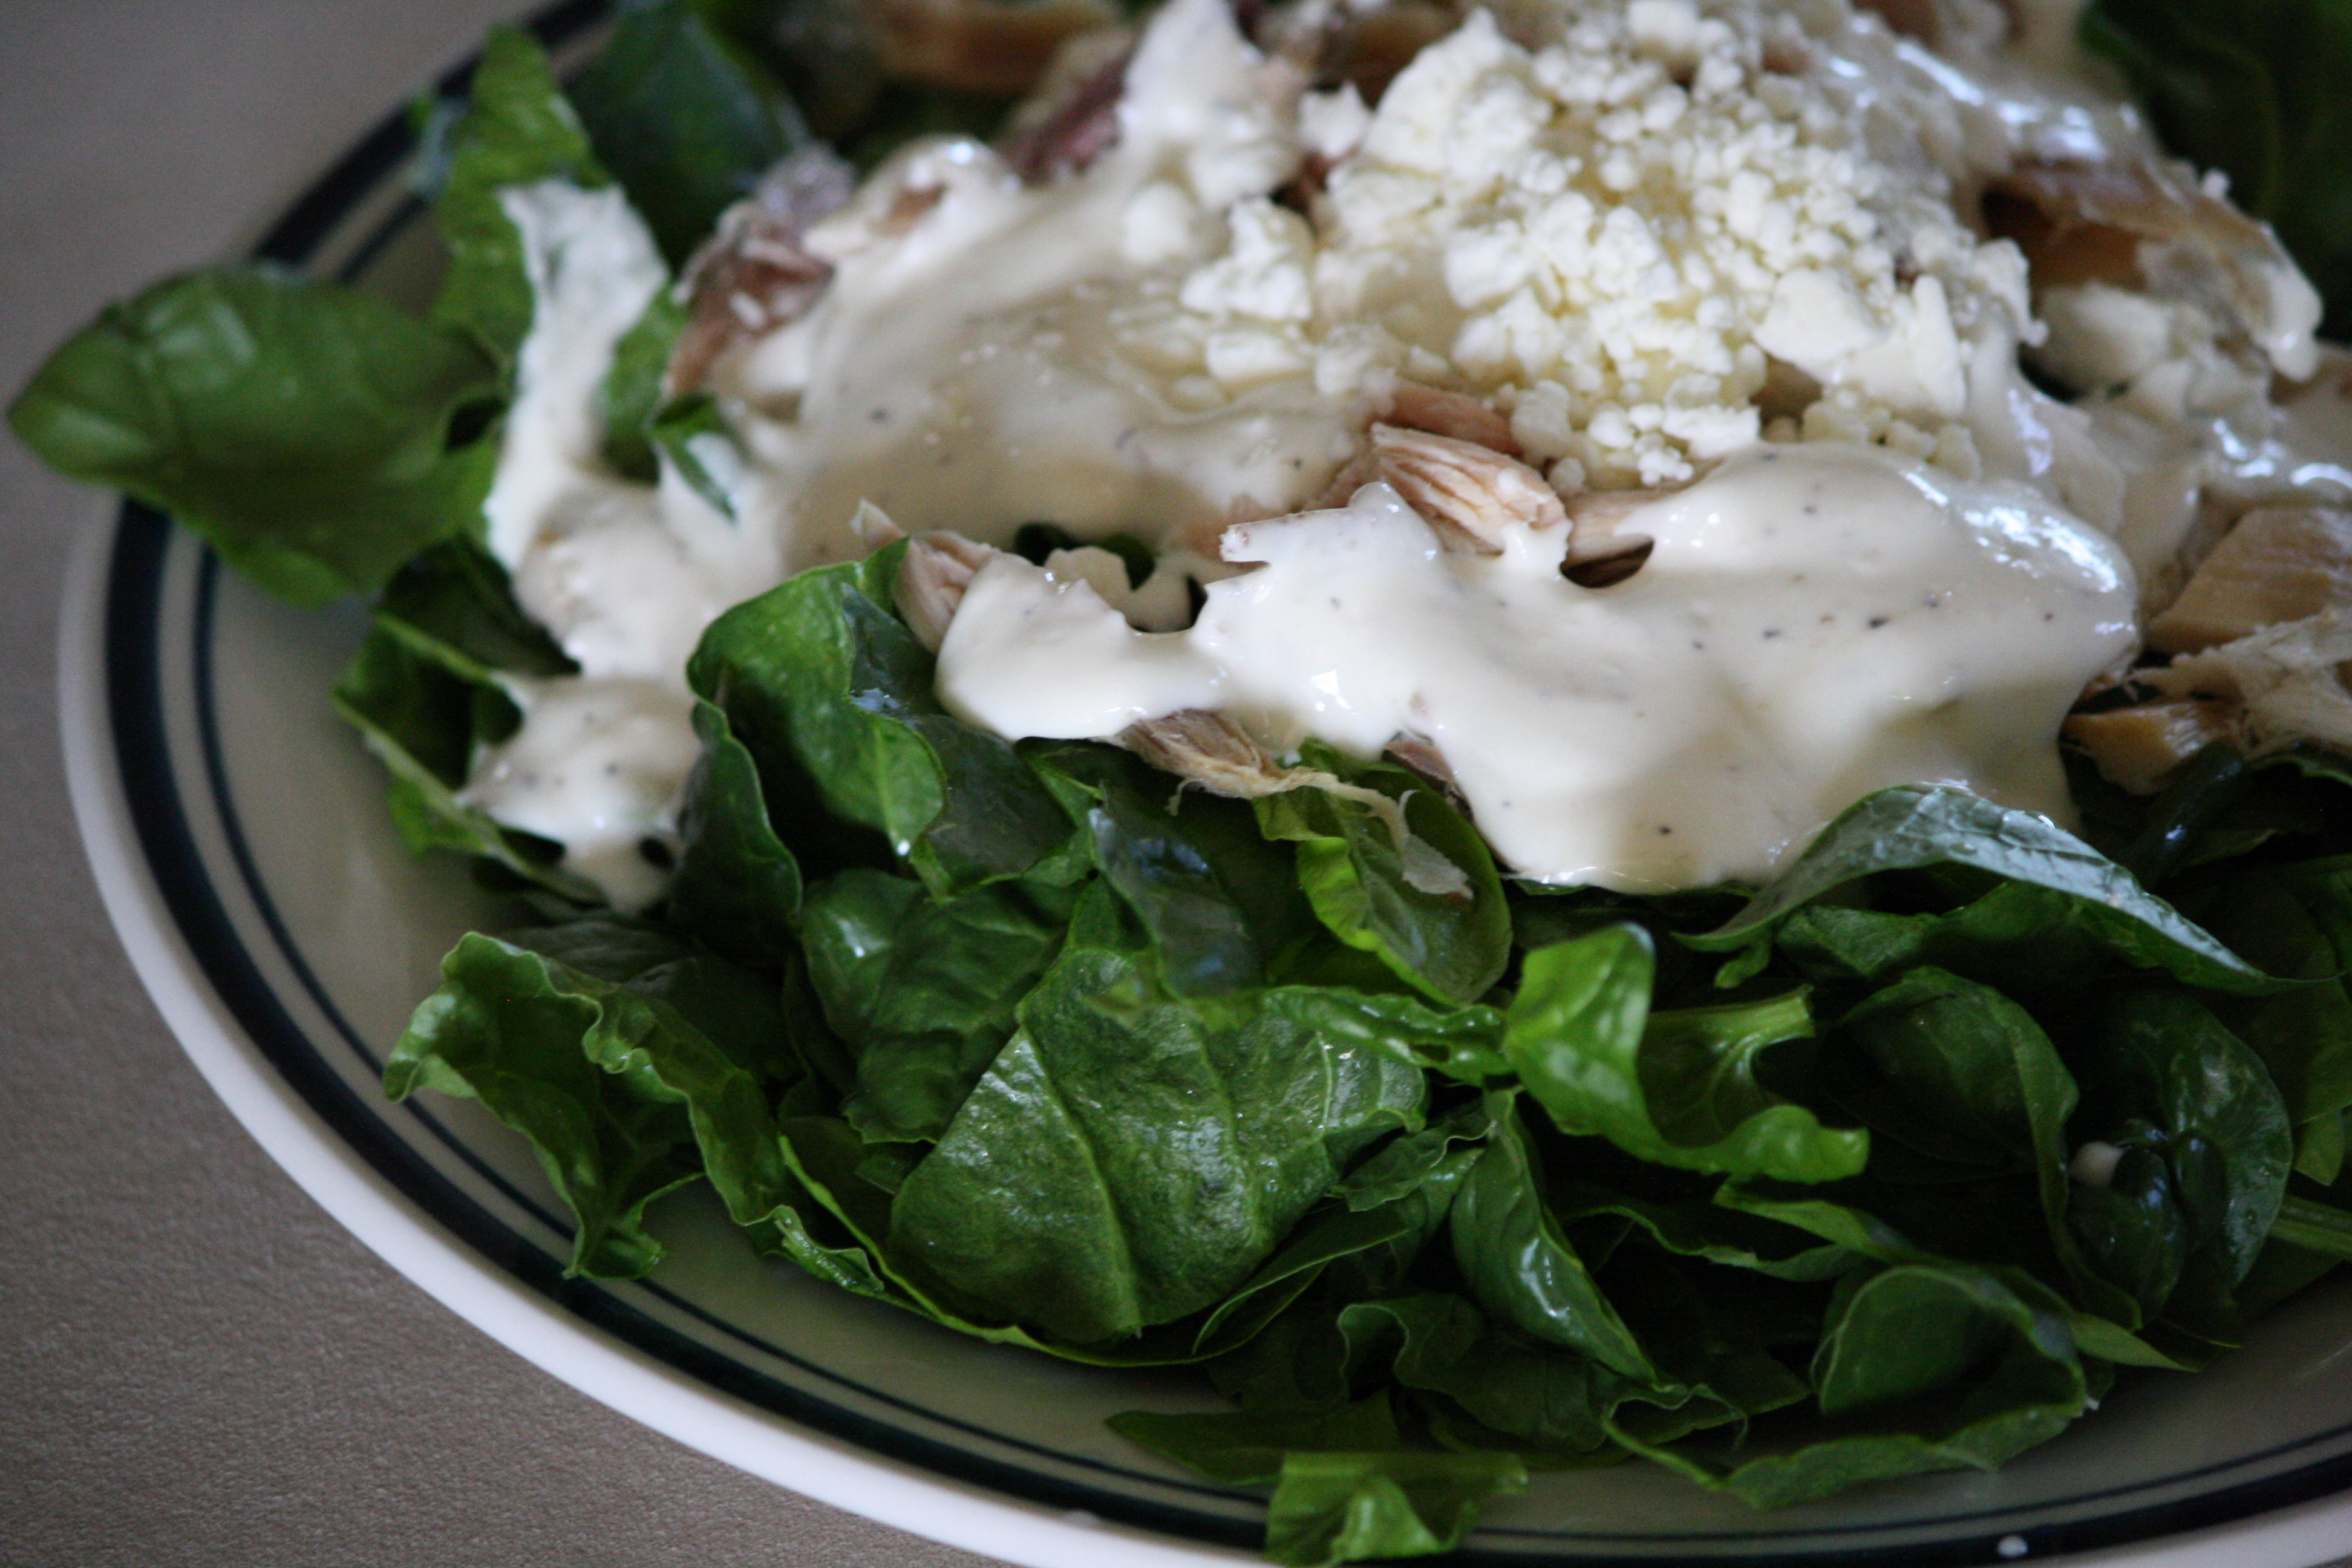 Spinach Salad with Chicken, Feta and Cream Dressing Picture | Free ...